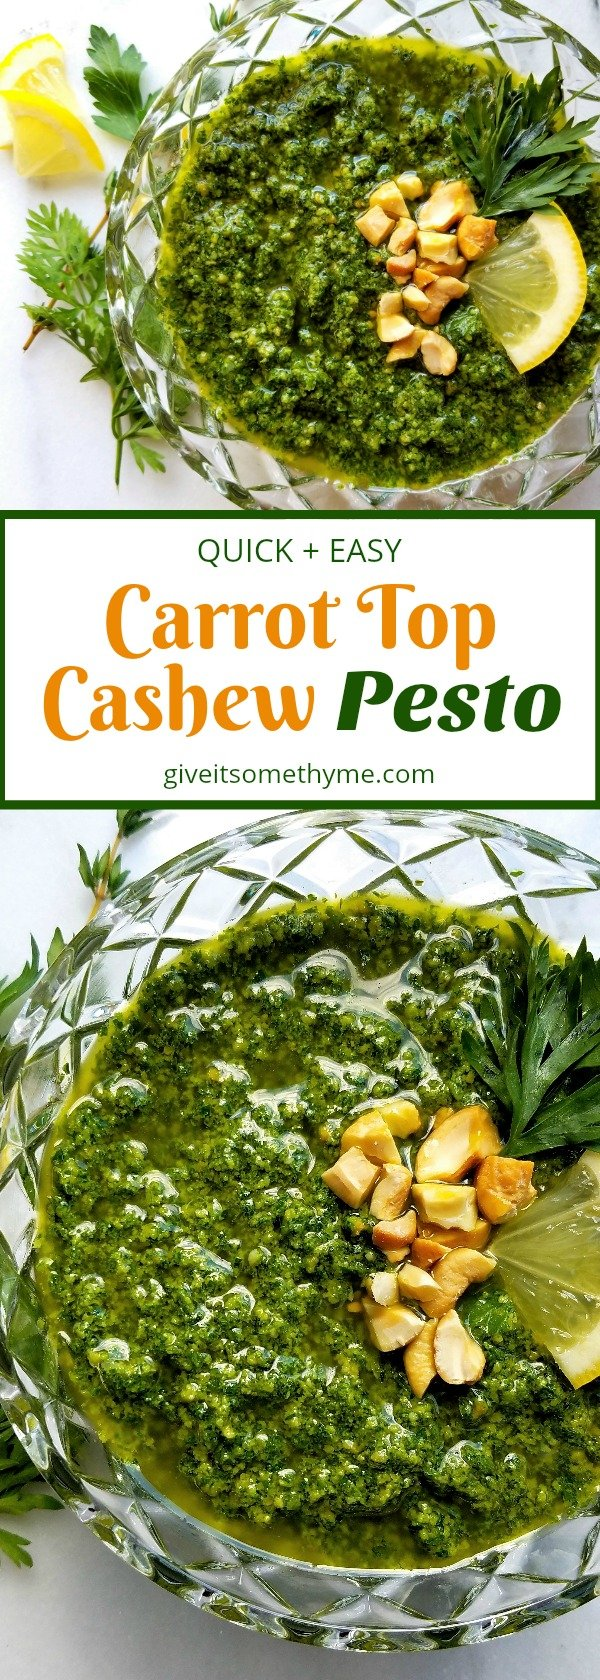 Carrot Top Cashew Pesto - Give it Some Thyme